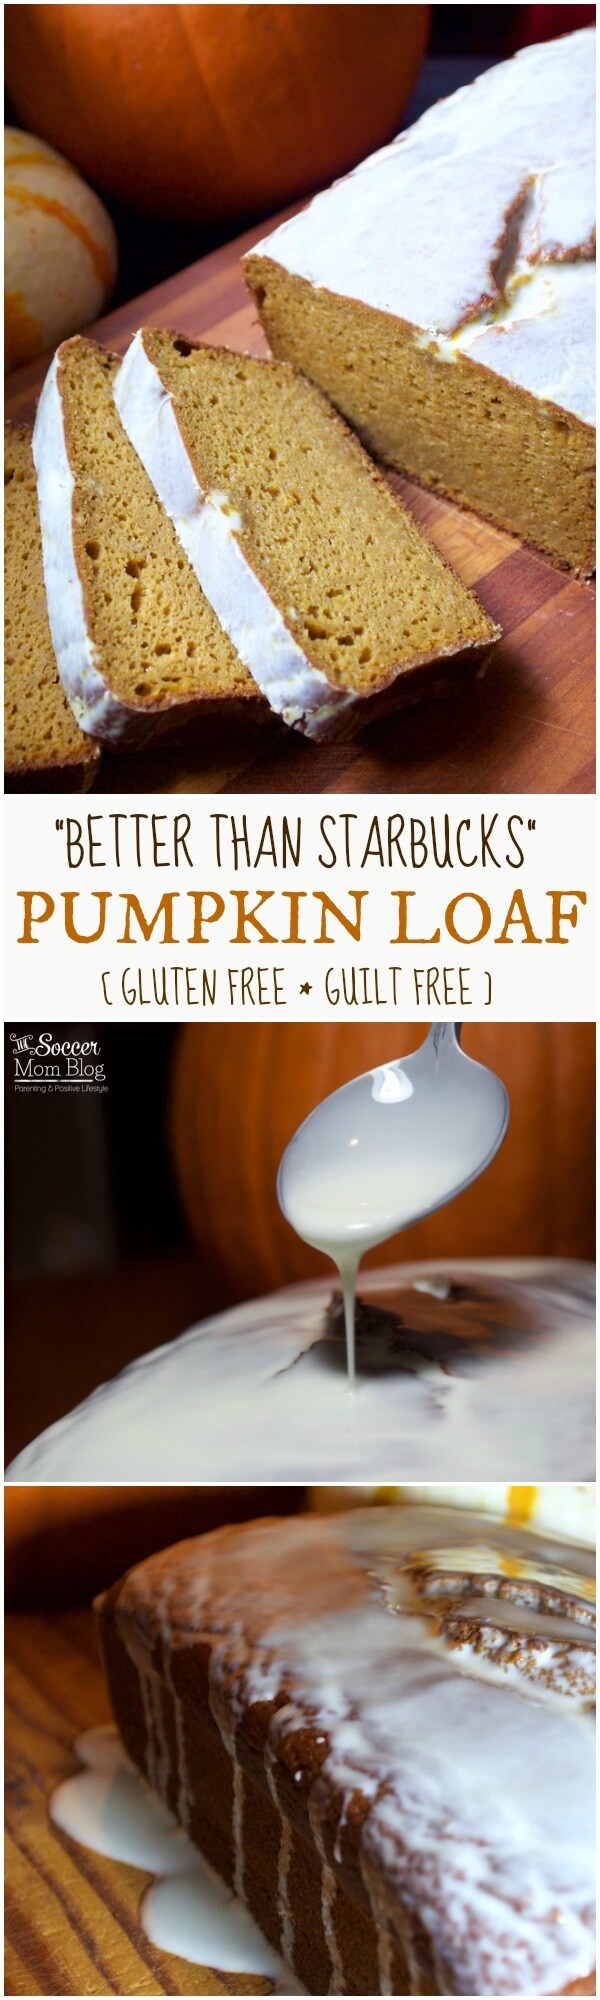 """Gluten free and guilt free """"Better than Starbucks Pumpkin Loaf"""" is moist, decadent, and made with healthy ingredients - Topped with """"magic"""" coconut oil white chocolate glaze. A holiday dessert you can feel GOOD about!"""